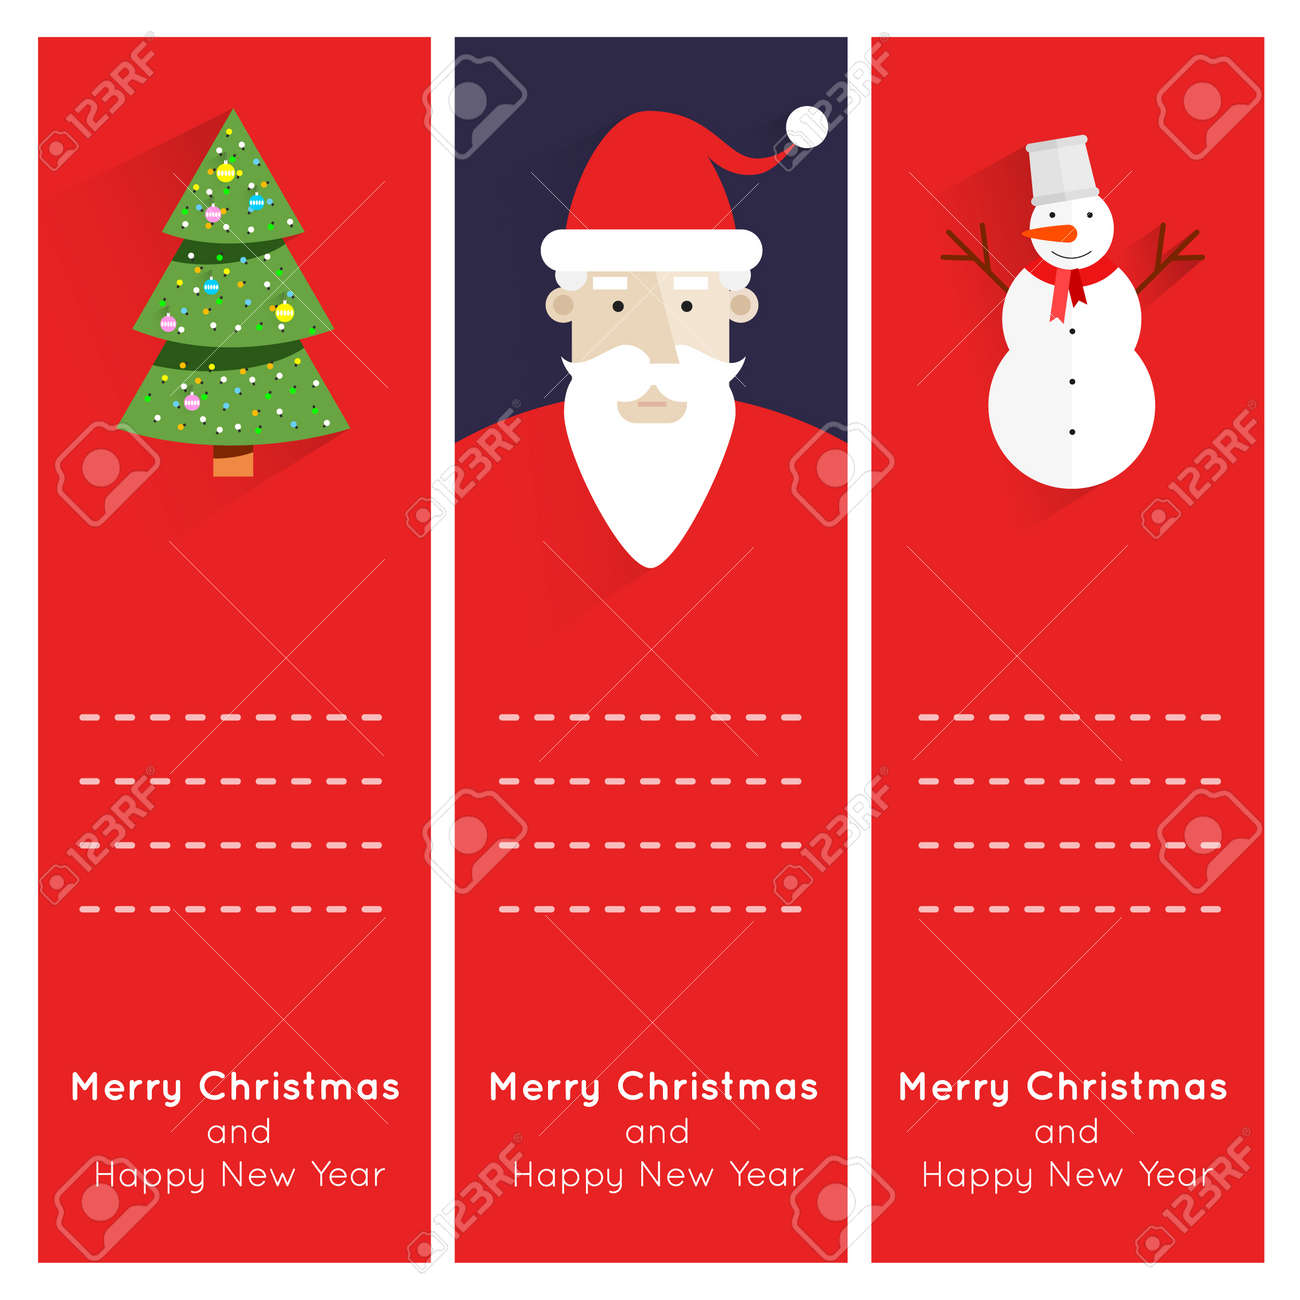 Free christmas poster design templates - Merry Christmas And Happy New Year Greeting Card Templates Poster Banner Card